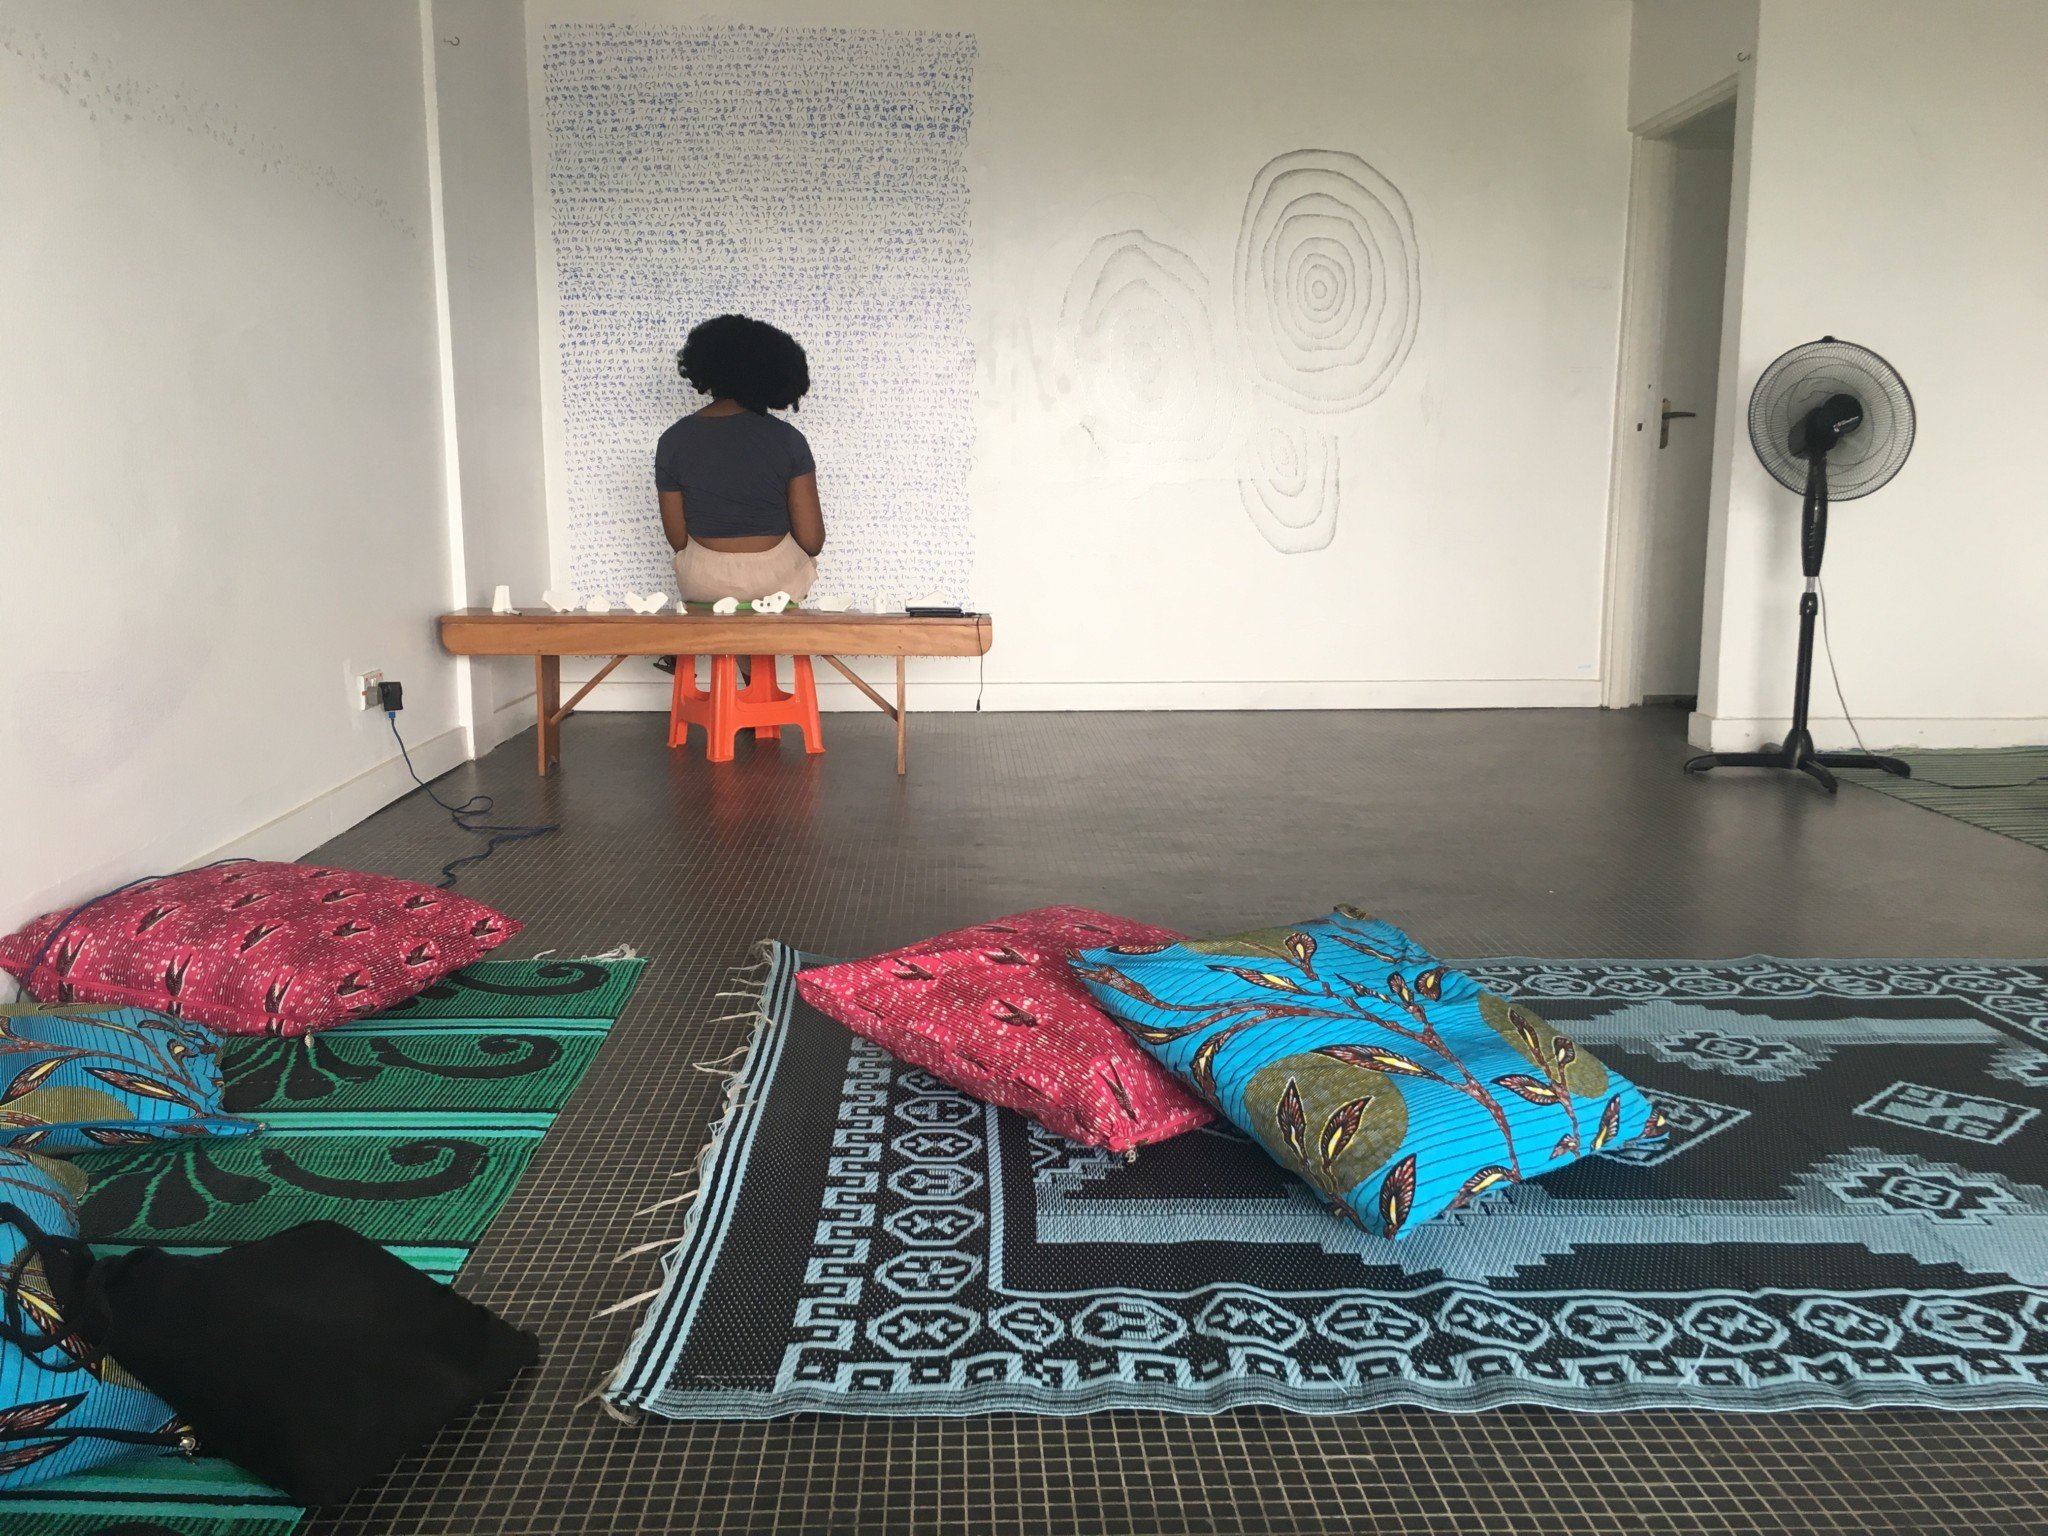 A performative presentation by artist WURA-NATASHA OGUNJI. Located in a top flat of a seven-story building in Lagos, Nigeria and founded by artist Wura-Natasha Ogunji, The Treehouse is one of the city's only art spaces dedicated solely to creative experimentation. In this performance presentation Ogunji invokes the artists and atmosphere of this dynamic place.